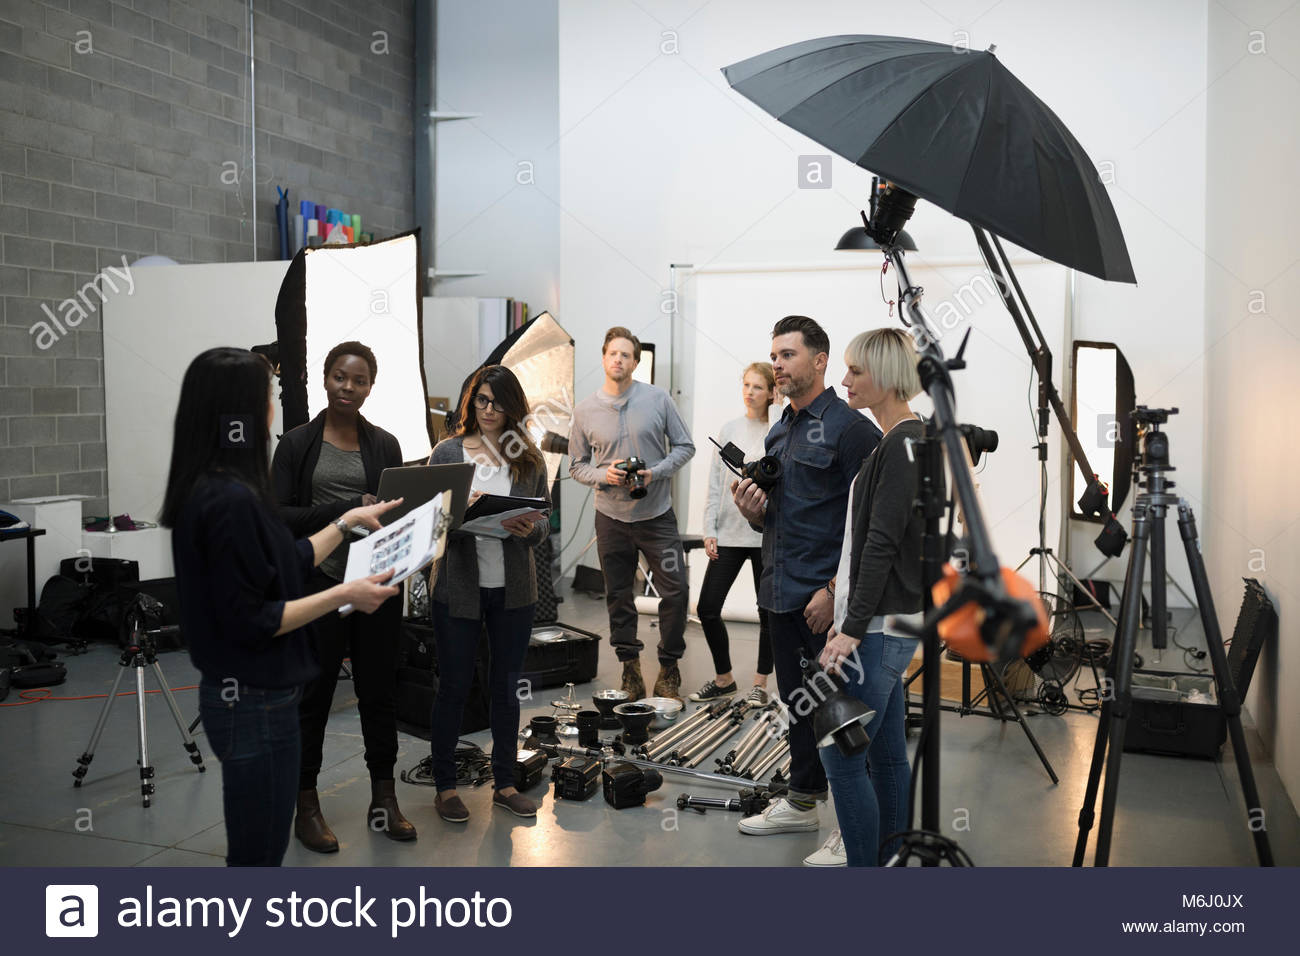 Photographers and production team meeting, preparing for photo shoot in studio - Stock Image